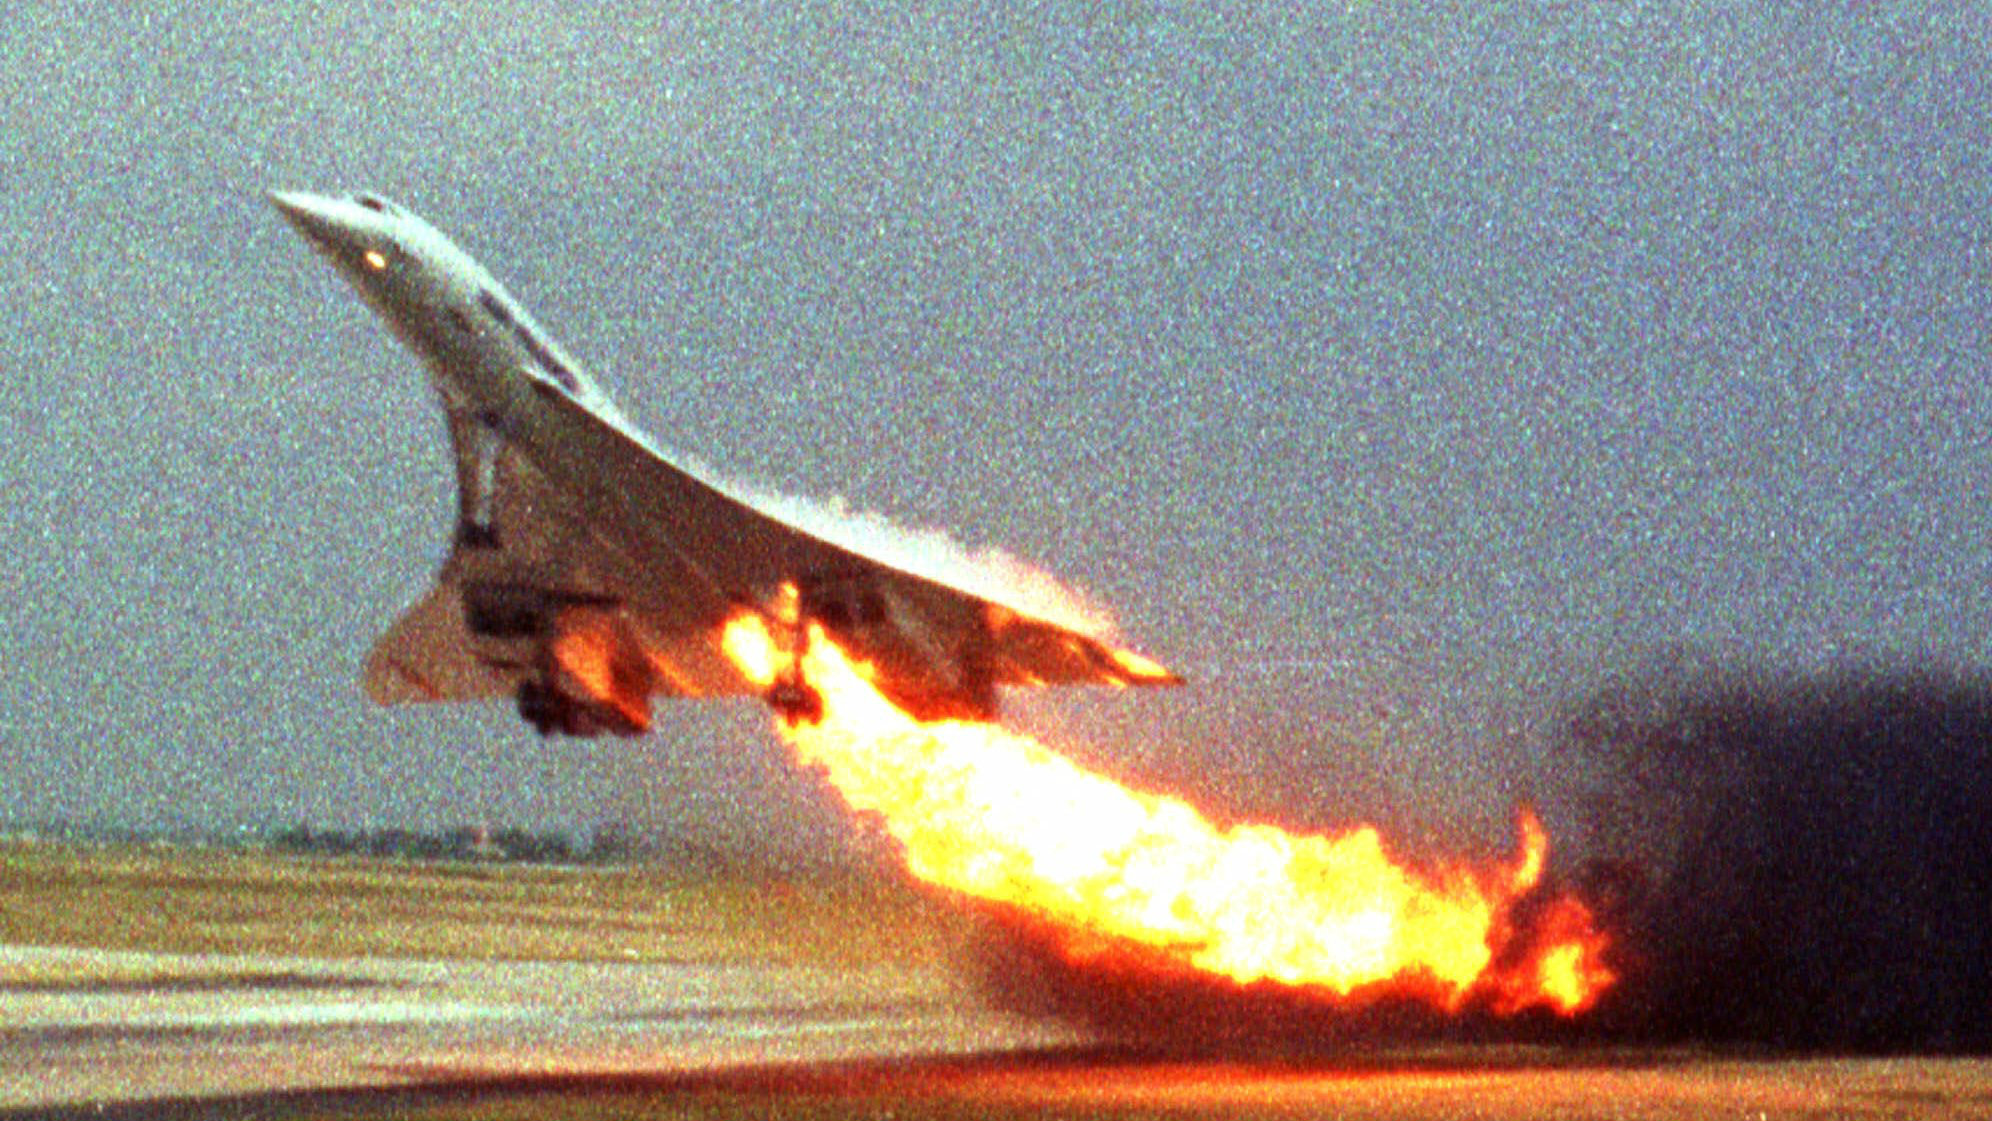 Air France Concorde flight 4590 takes off with fire trailing from its engine on the left wing from Charles de Gaulle airport in Paris, in this July 25, 2000 file photo.